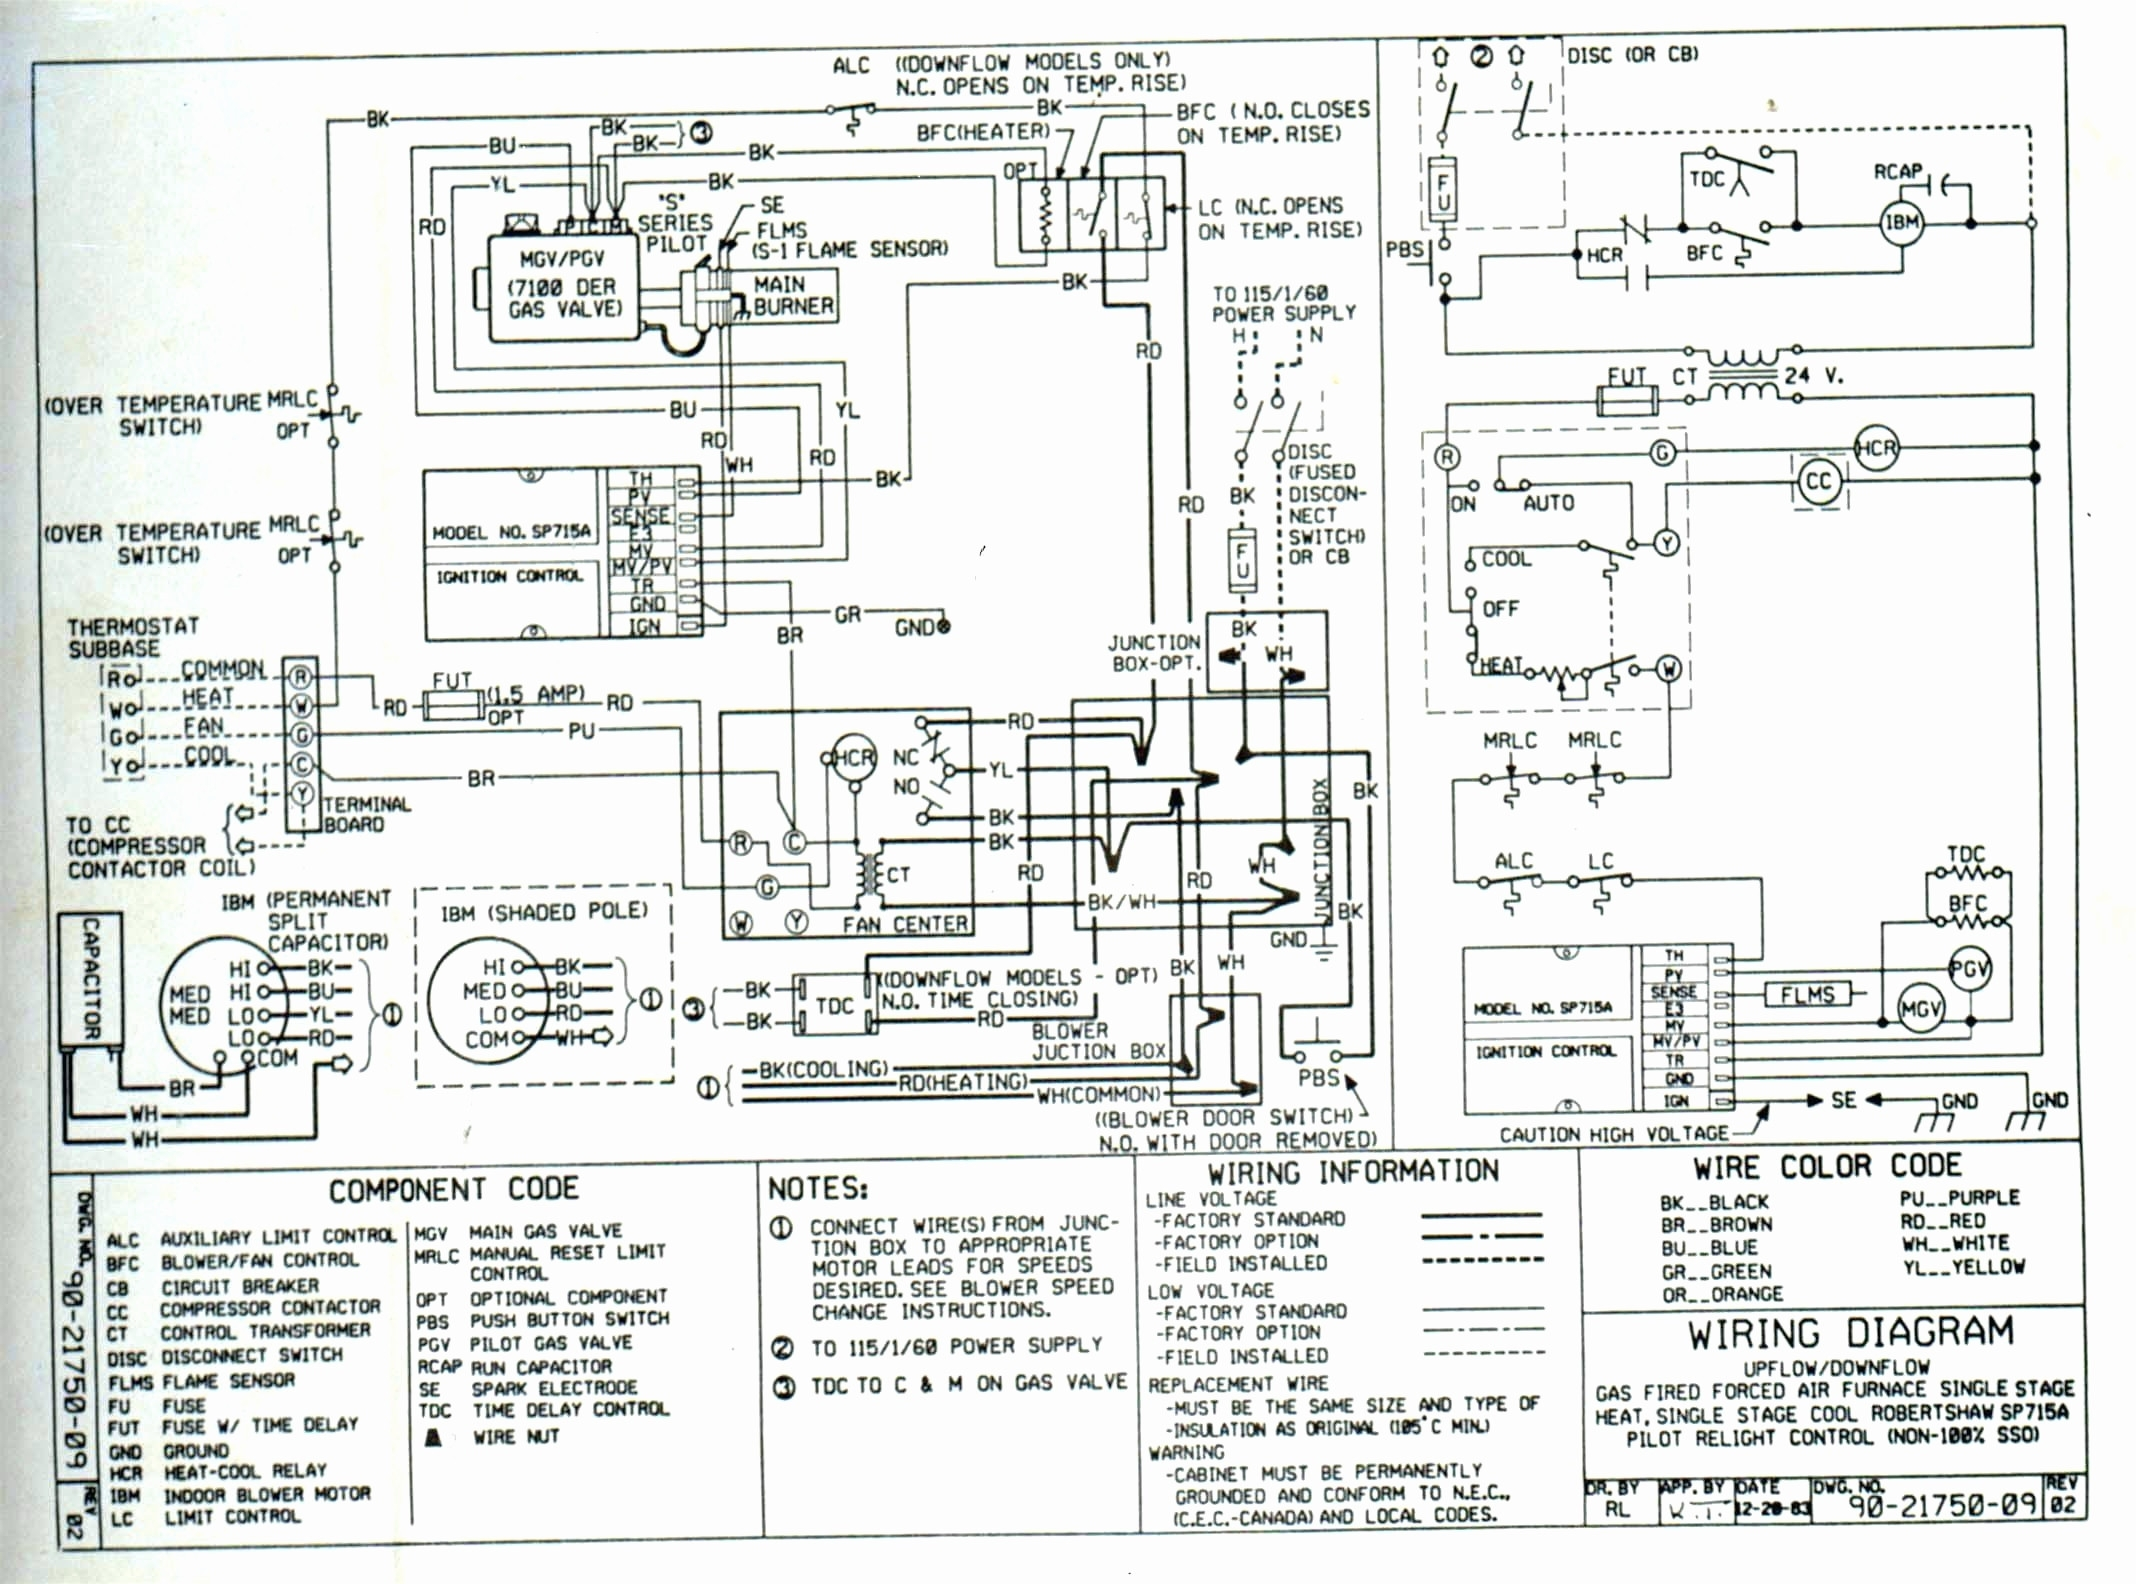 bodine electric motor wiring diagram Download-Bodine Electric Motor Wiring Diagram Ac Gear Motor Wiring Diagram New Wiring Diagram Electric Motor 10-p